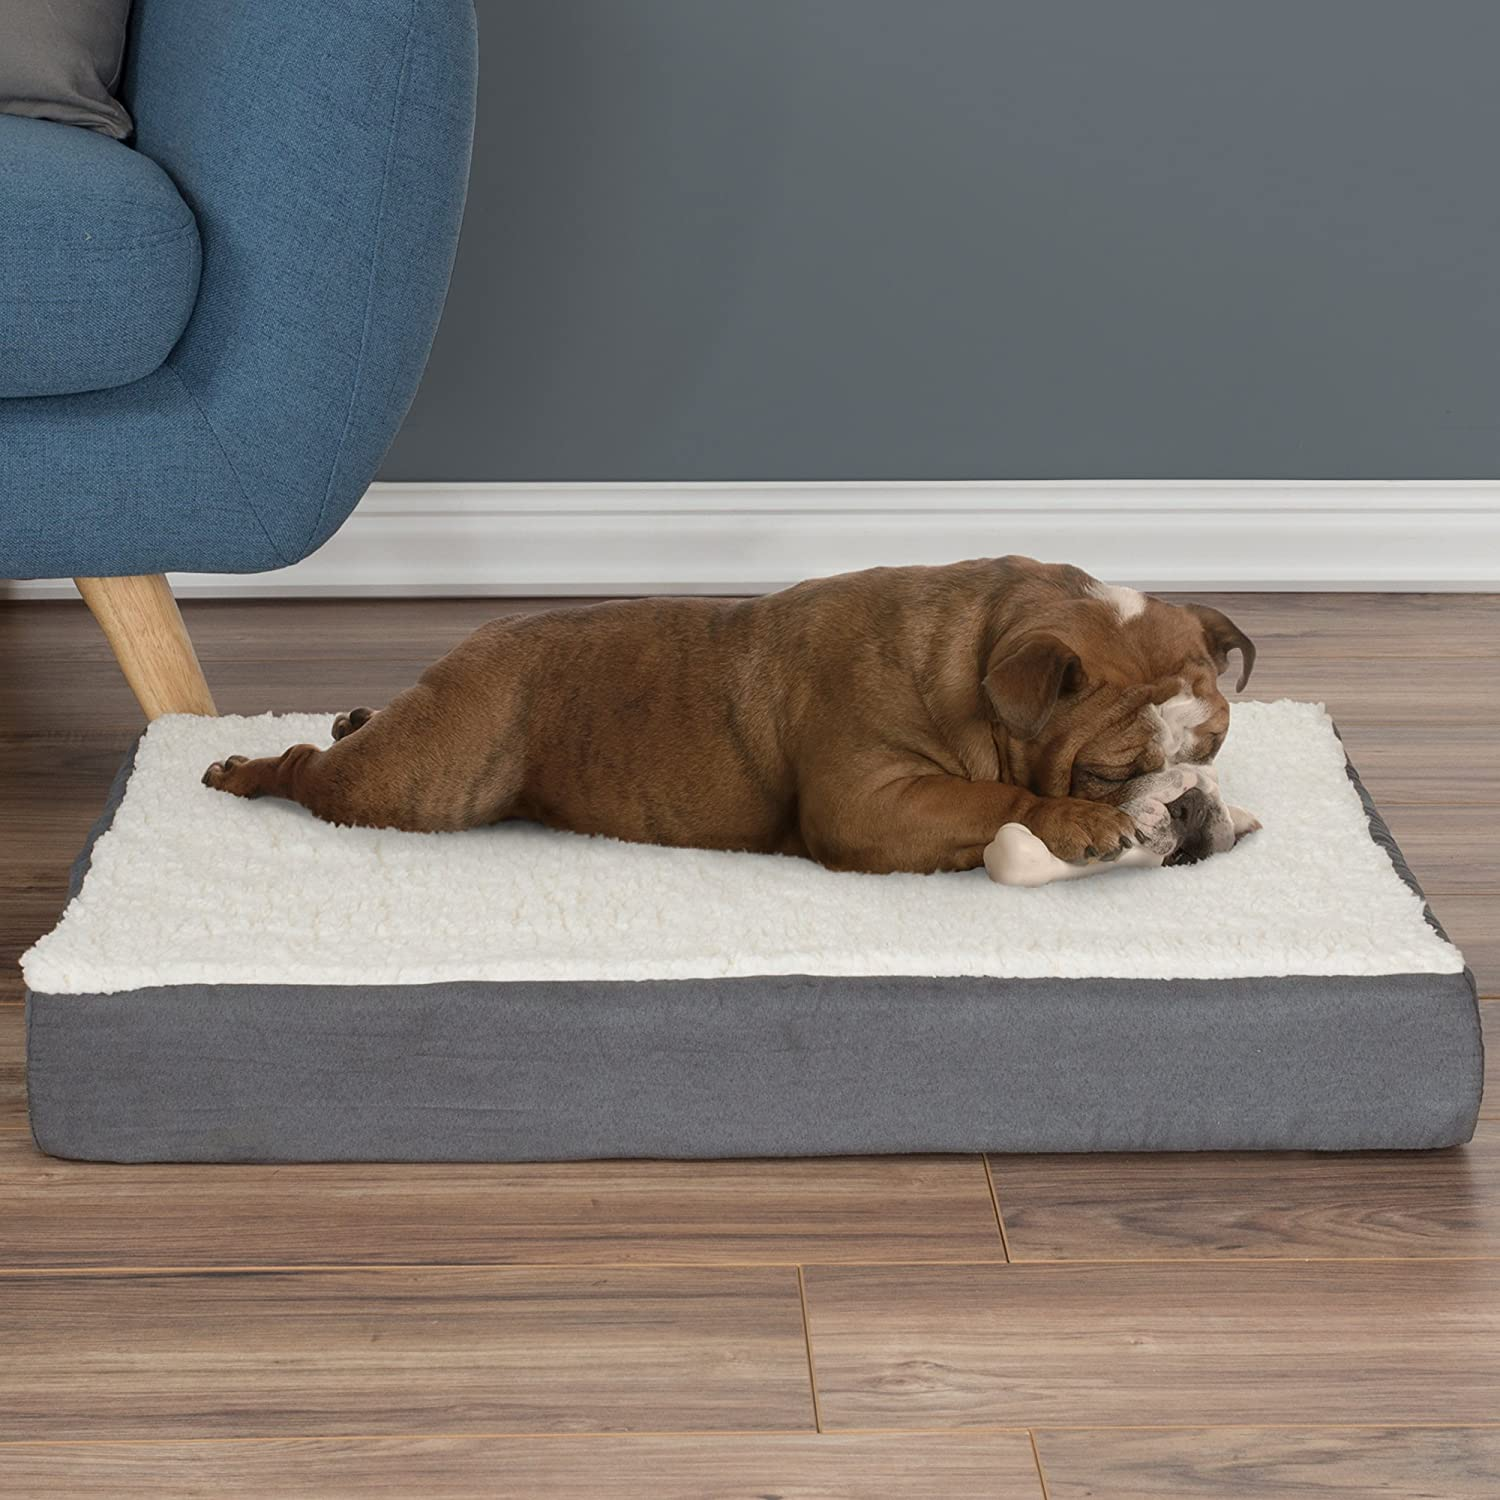 Gray Rectangular Soft Warming Dog Bed with Removable Pad Polyester Memory Foam Bed for Resting Calming Sleeping for Small Medium Large Dogs